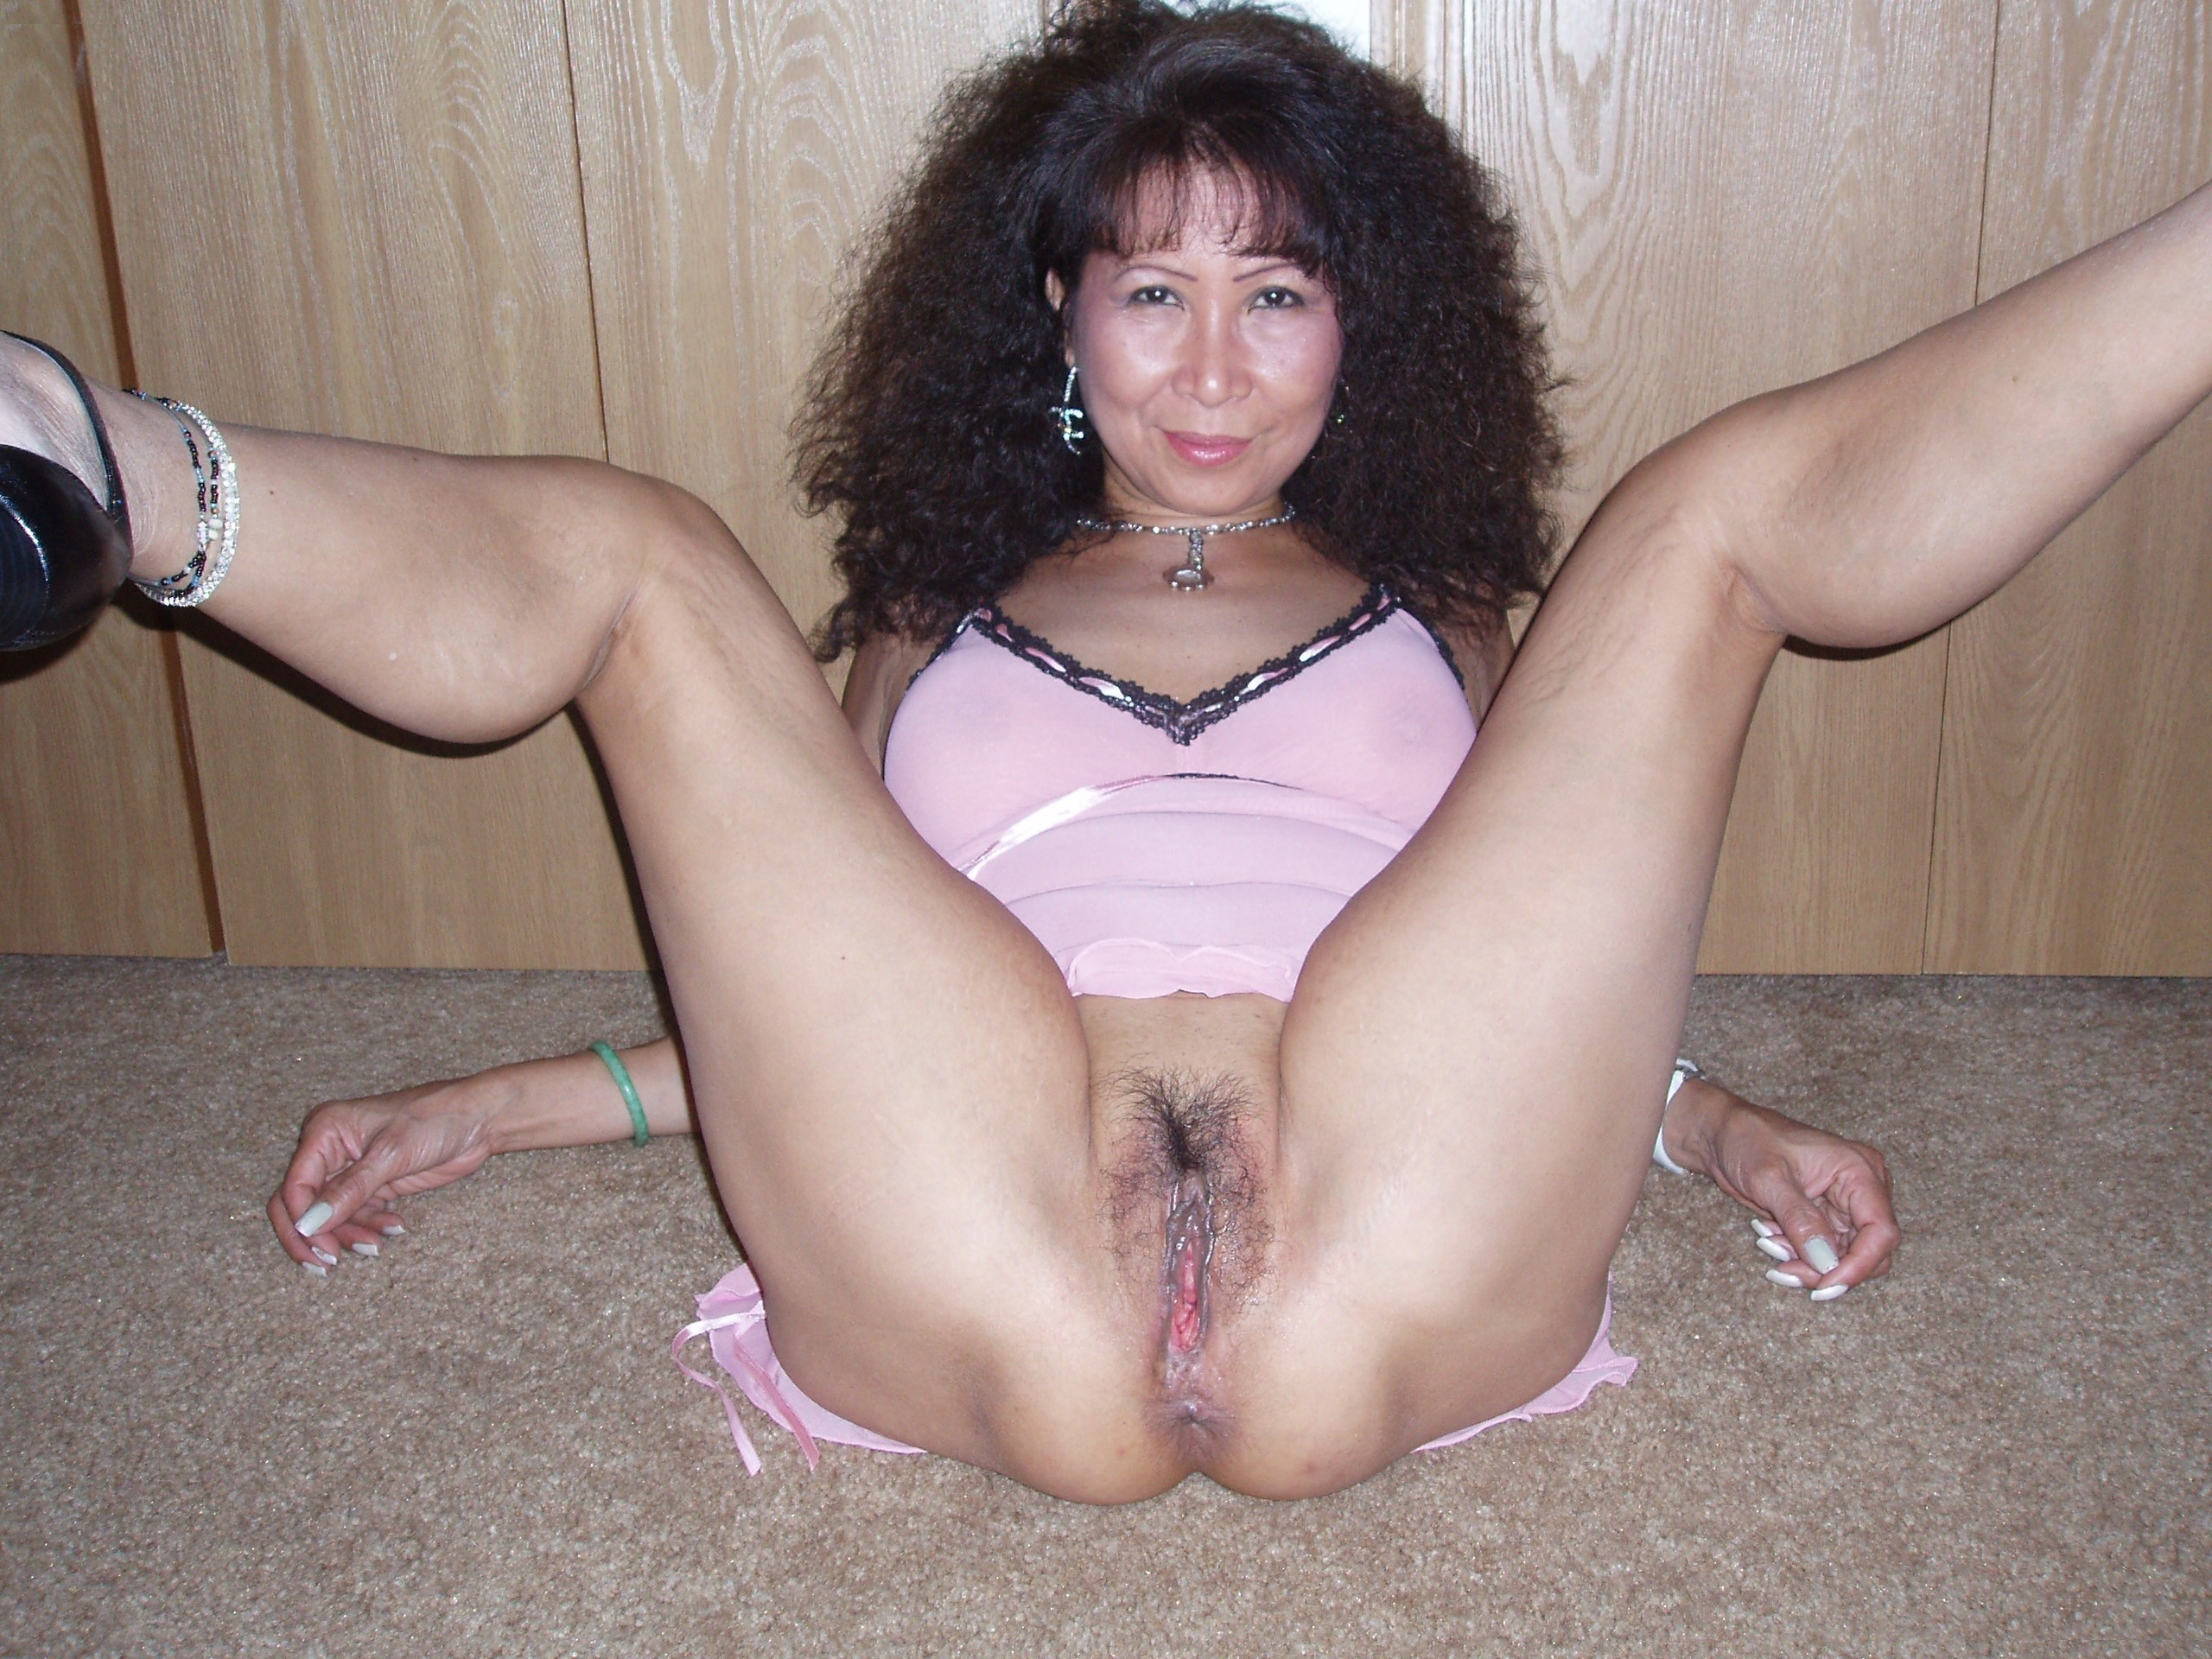 Milf Asian Women - mature asian women porn